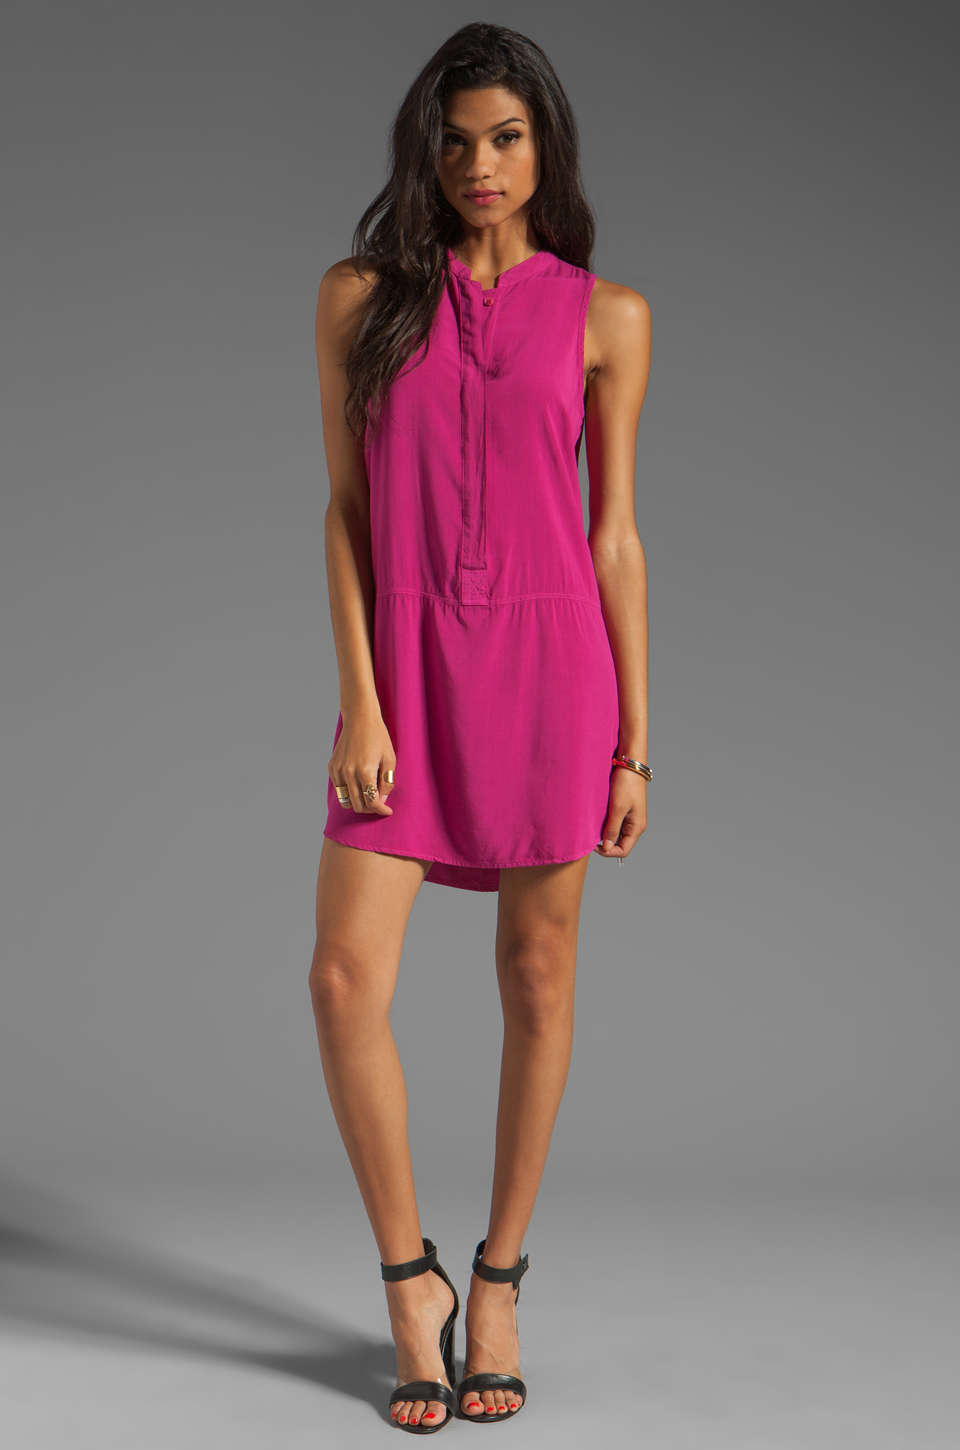 Splendid Tank Dress in Plum